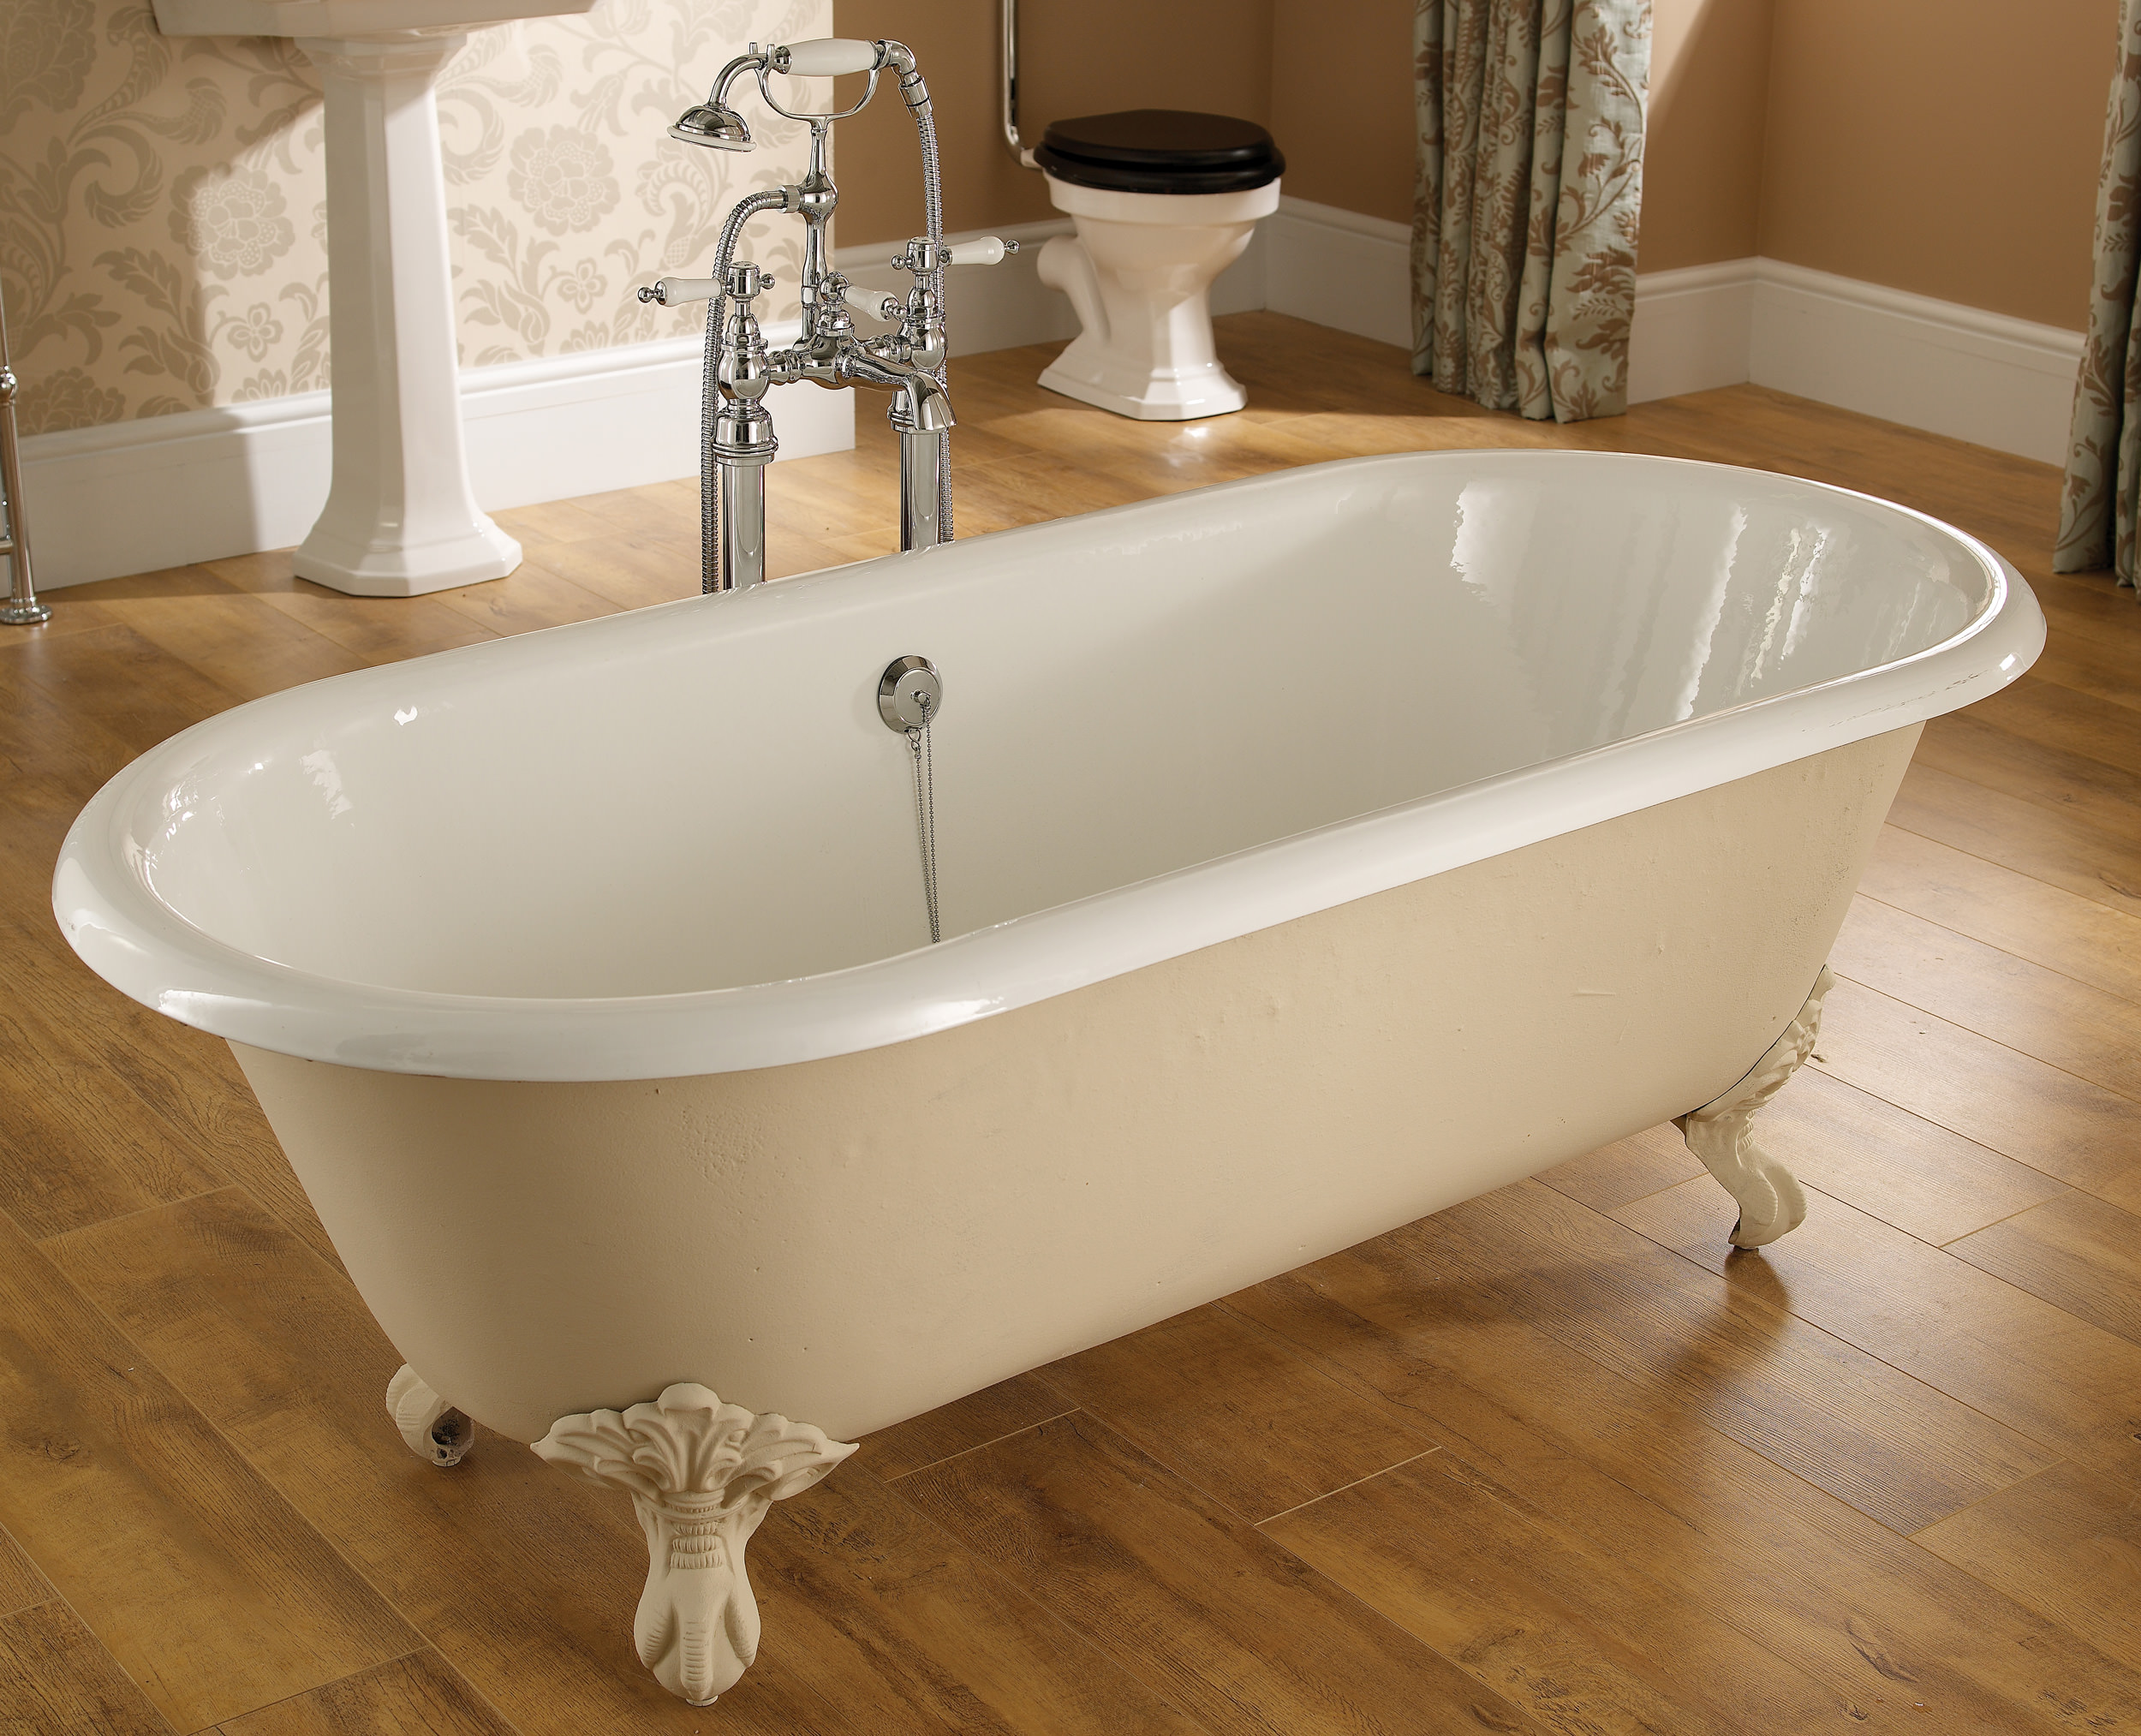 Sink bowl bathroom - Heritage Oban Double Ended Roll Top Bath With Feet 1760 X